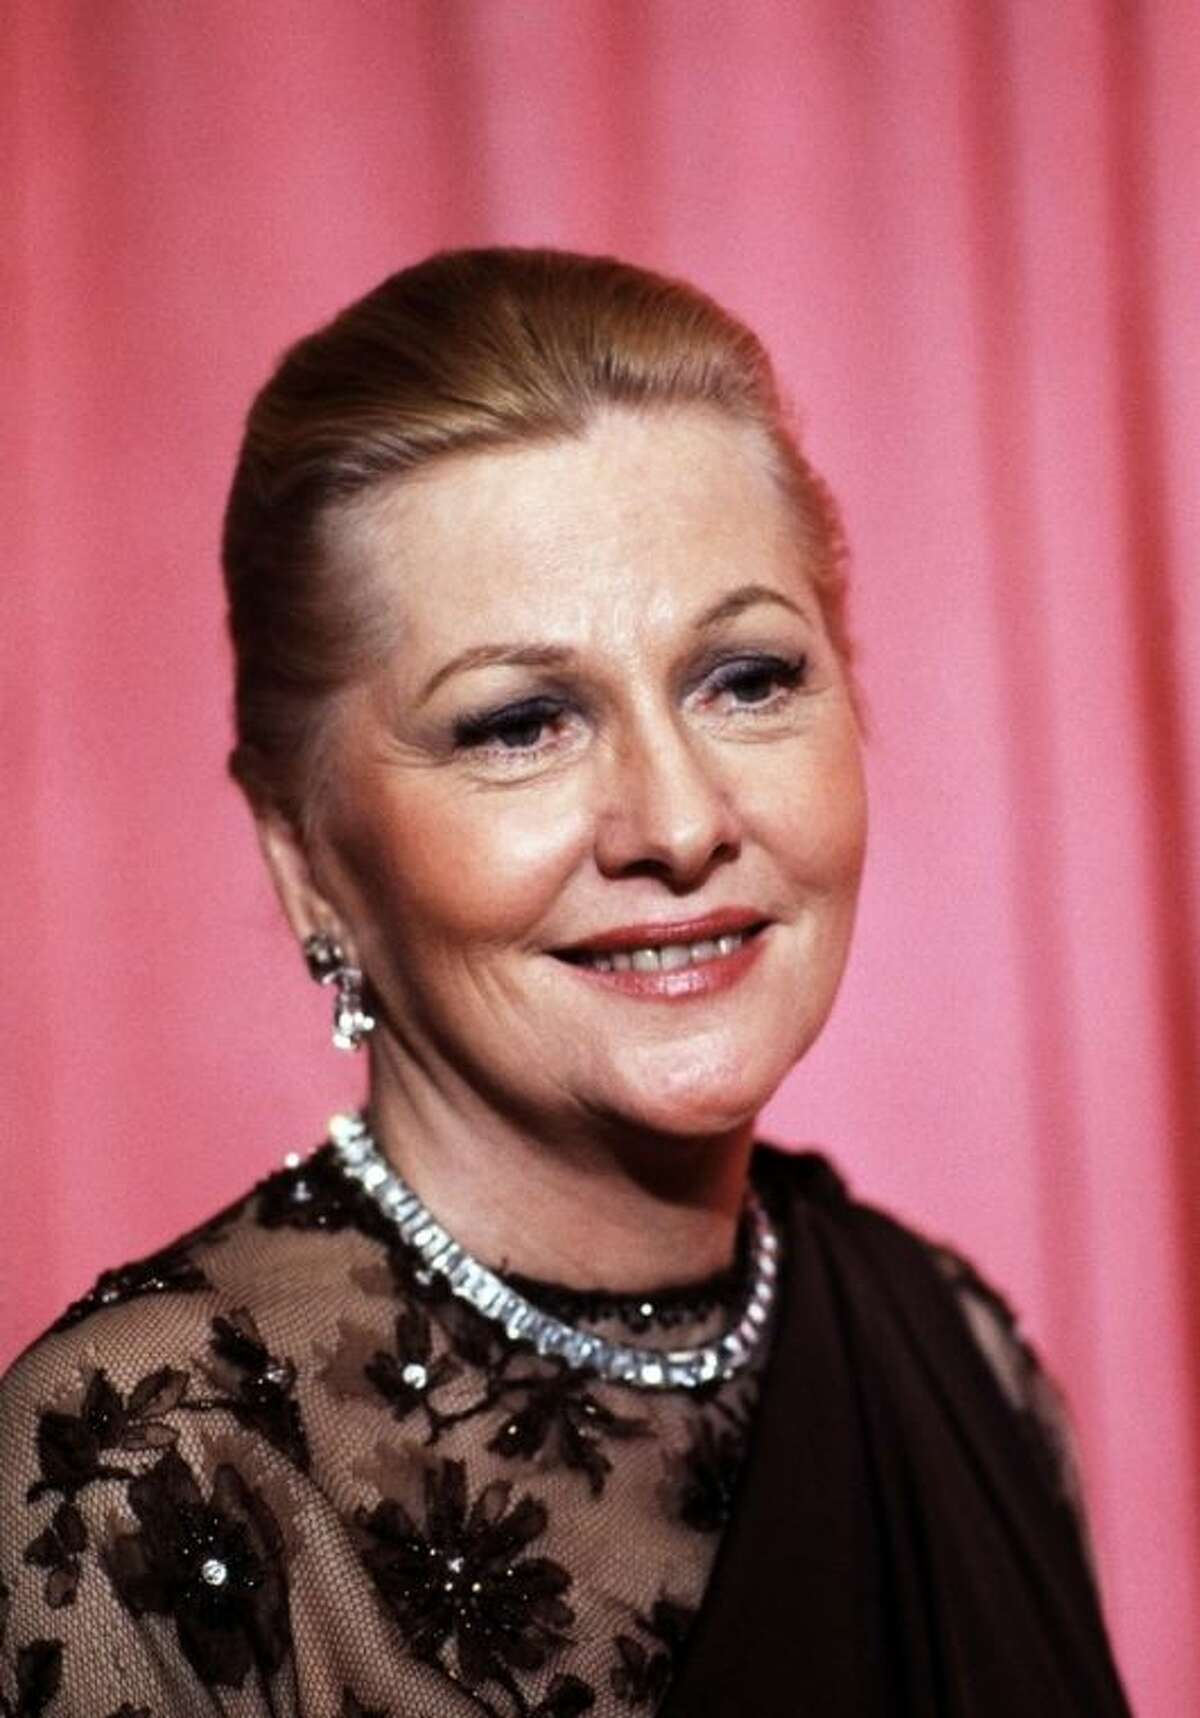 File- This April 3, 1978 file photo shows actress Joan Fontaine at the 50th Annual Academy Awards in Los Angeles. The Oscar-winning actres has died at the age of 96. Longtime friend Noel Beutel says she died in her sleep in her Carmel home Sunday, Dec. 15, 2013. (AP Photo/File)